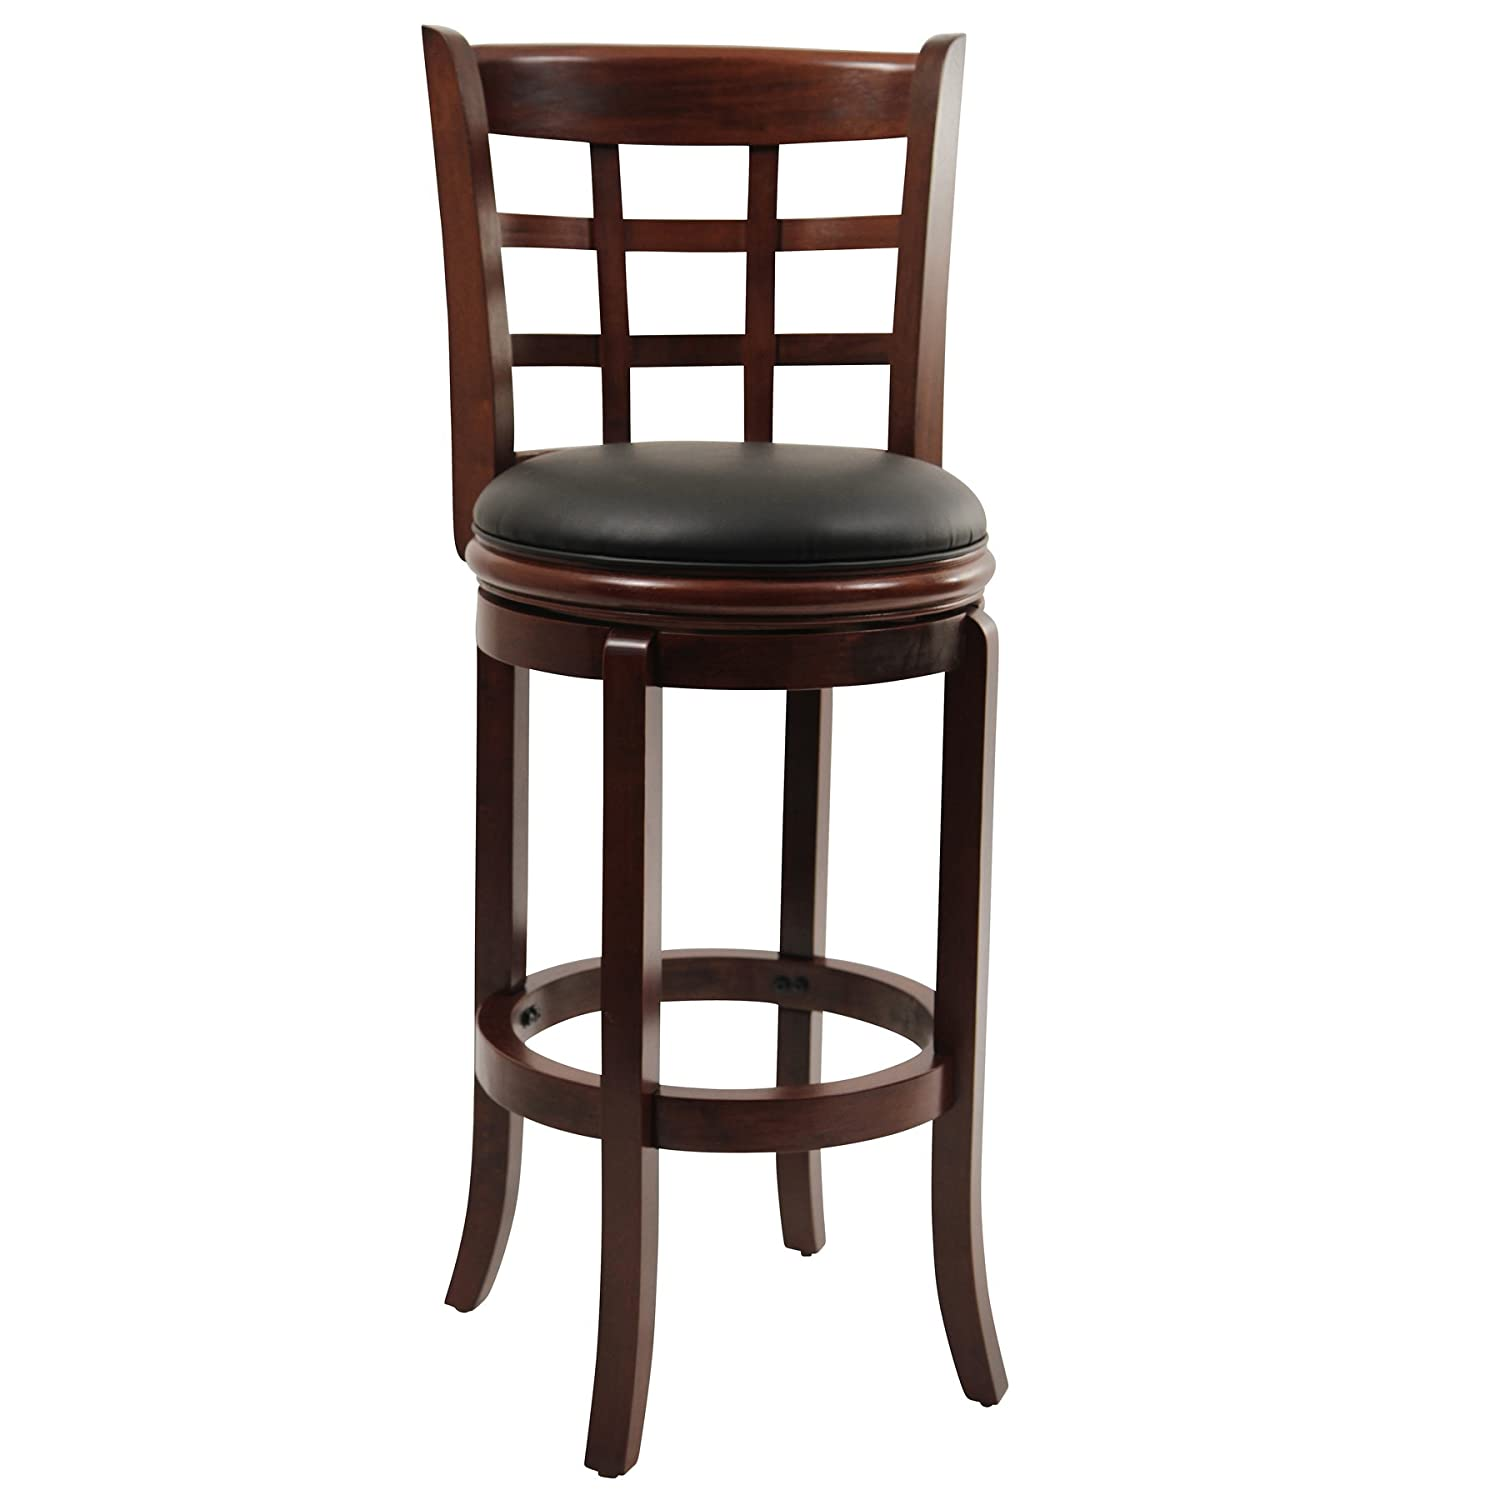 Cheap High Bar Stools Cheap Bar Stools With Back 2013